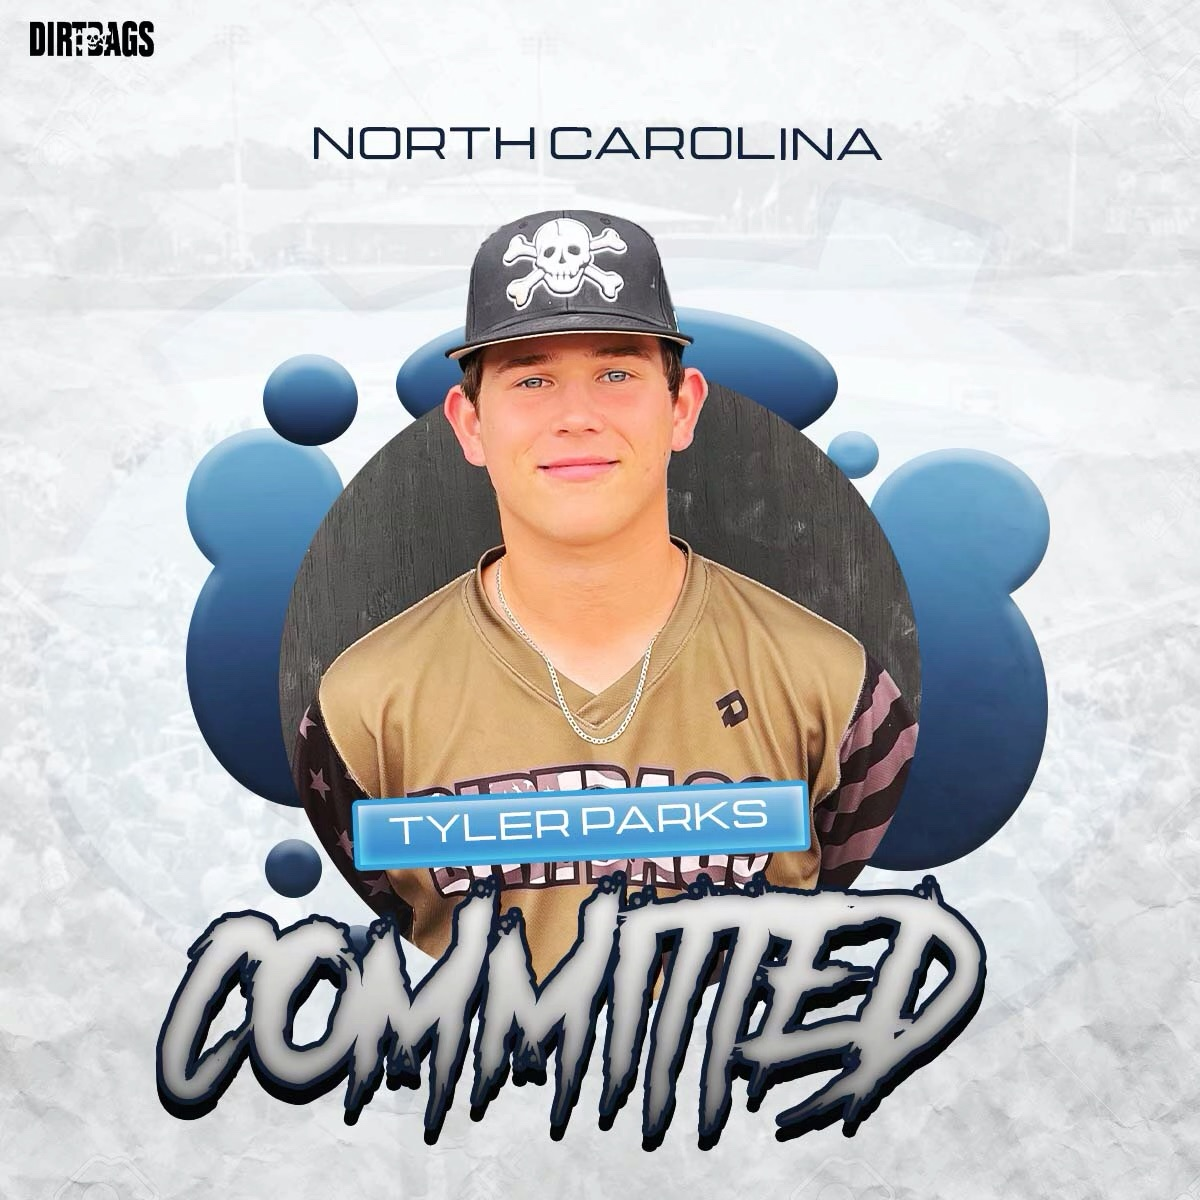 Tyler Parks commits to UNC